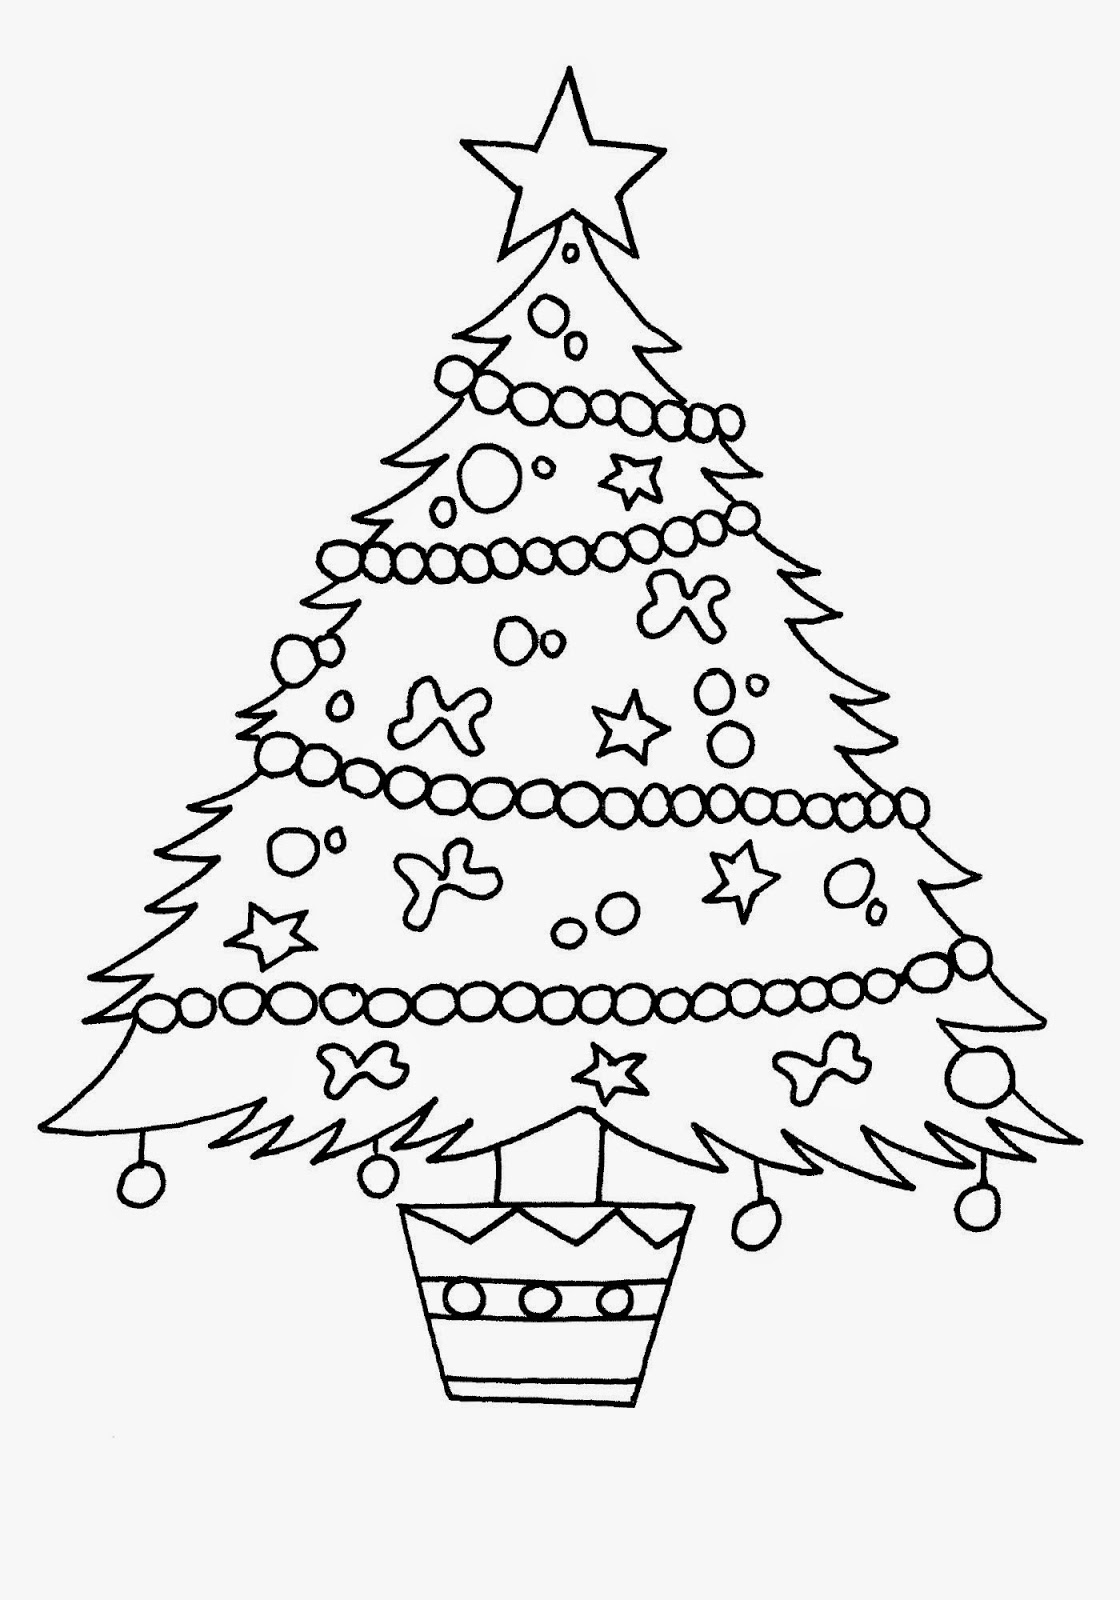 pencil drawings of pine trees pine tree pencil drawing at getdrawings free download drawings pine trees pencil of